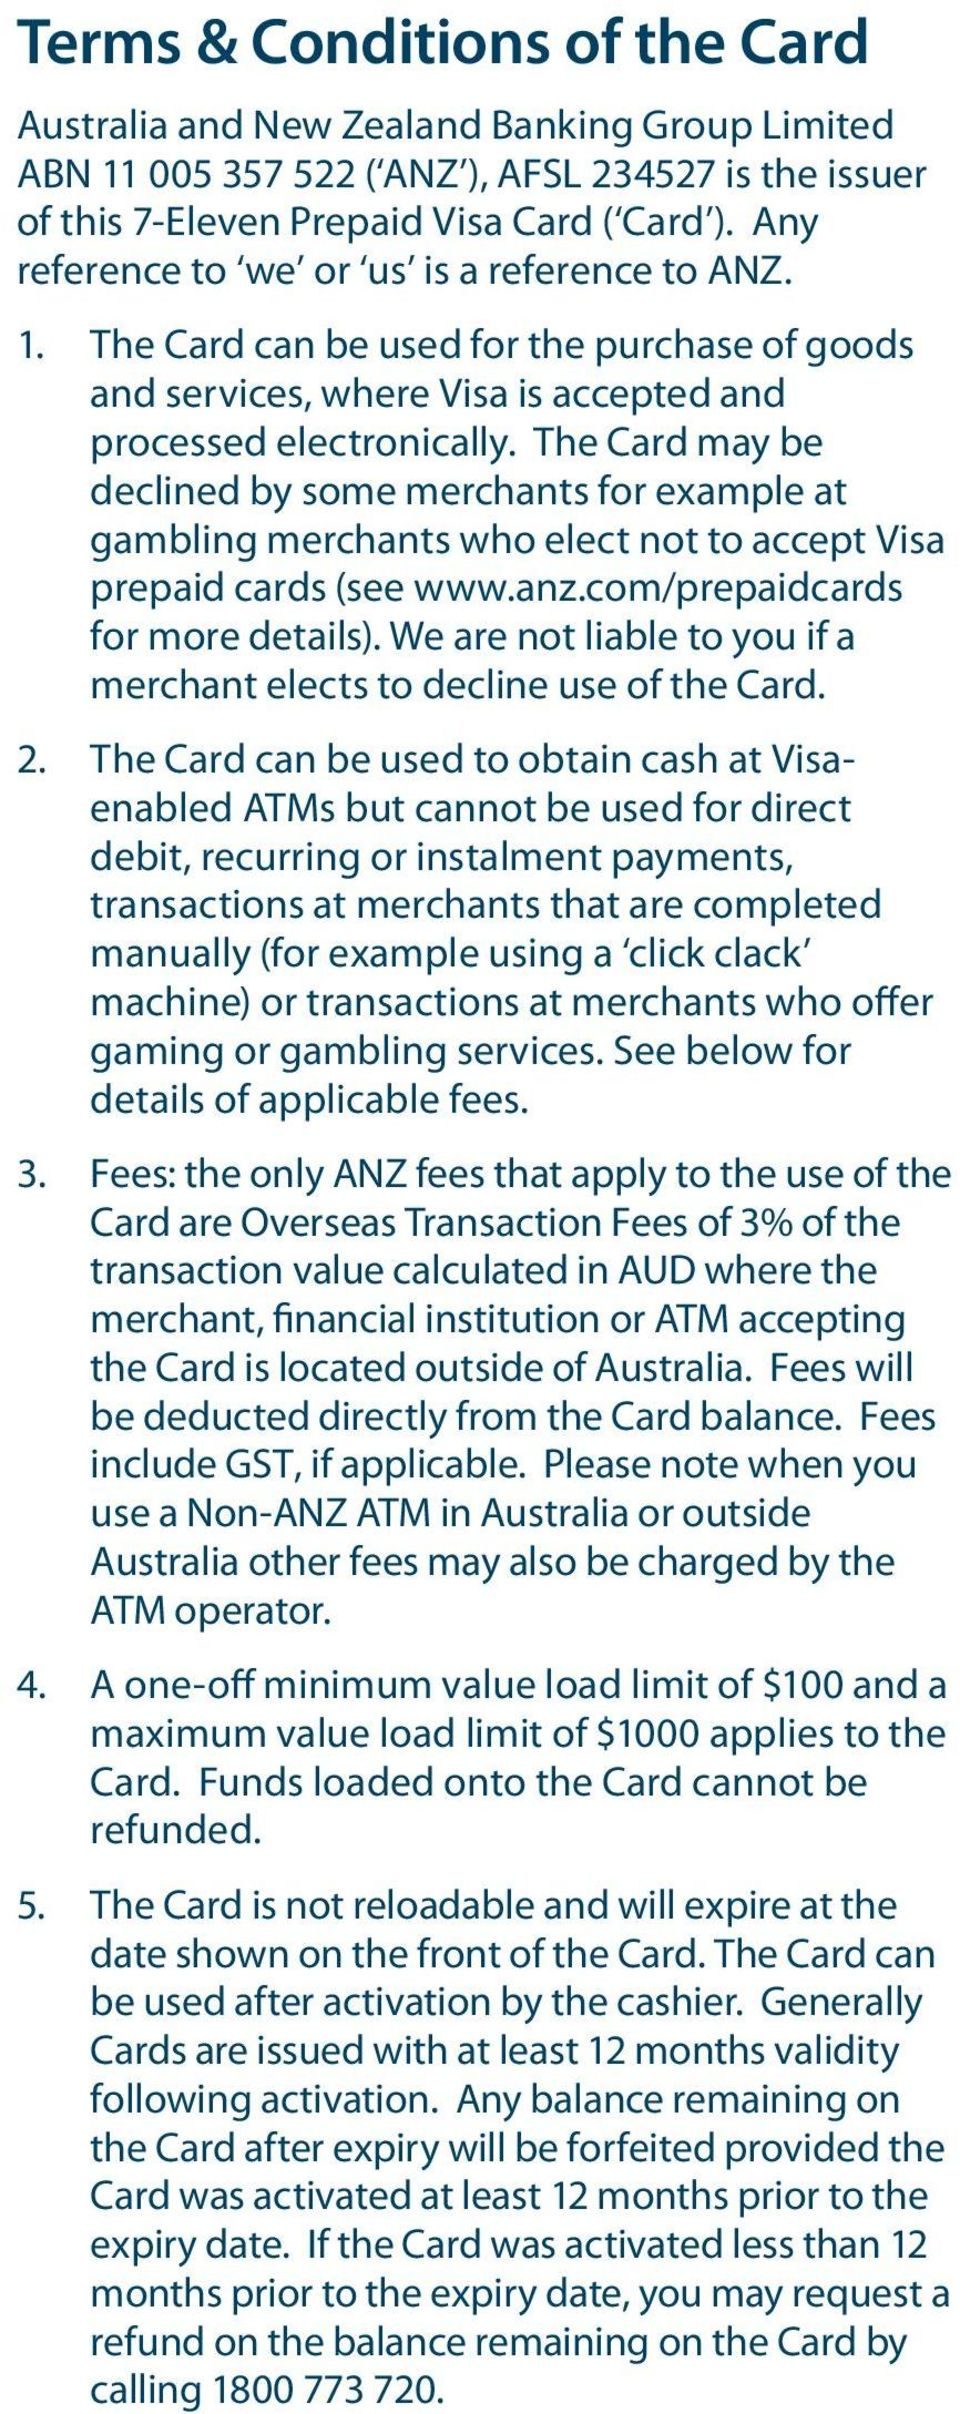 The Card may be declined by some merchants for example at gambling merchants who elect not to accept Visa prepaid cards (see www.anz.com/prepaidcards for more details).